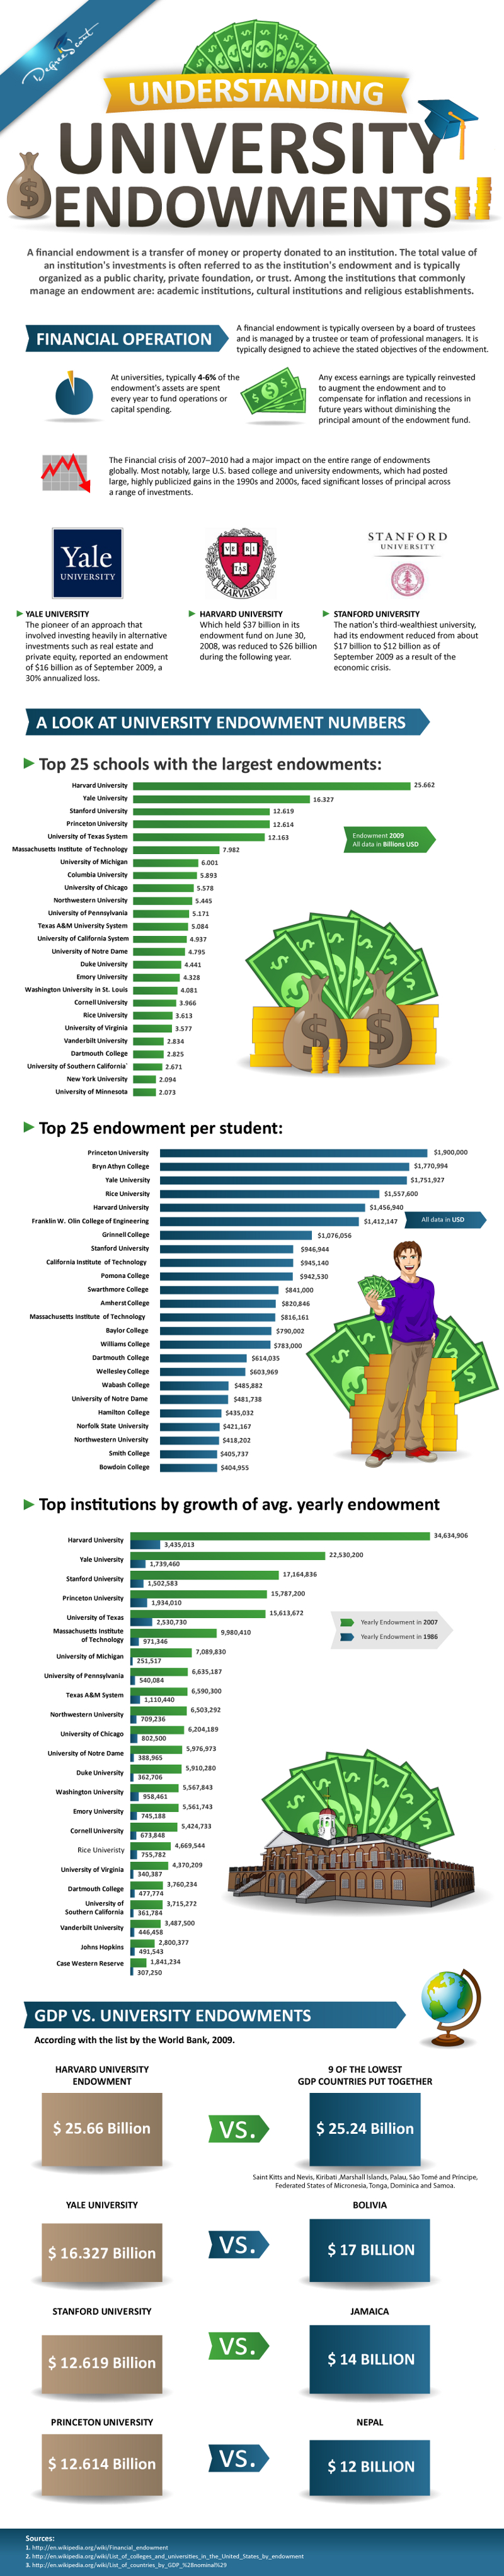 Guide to University Endowments